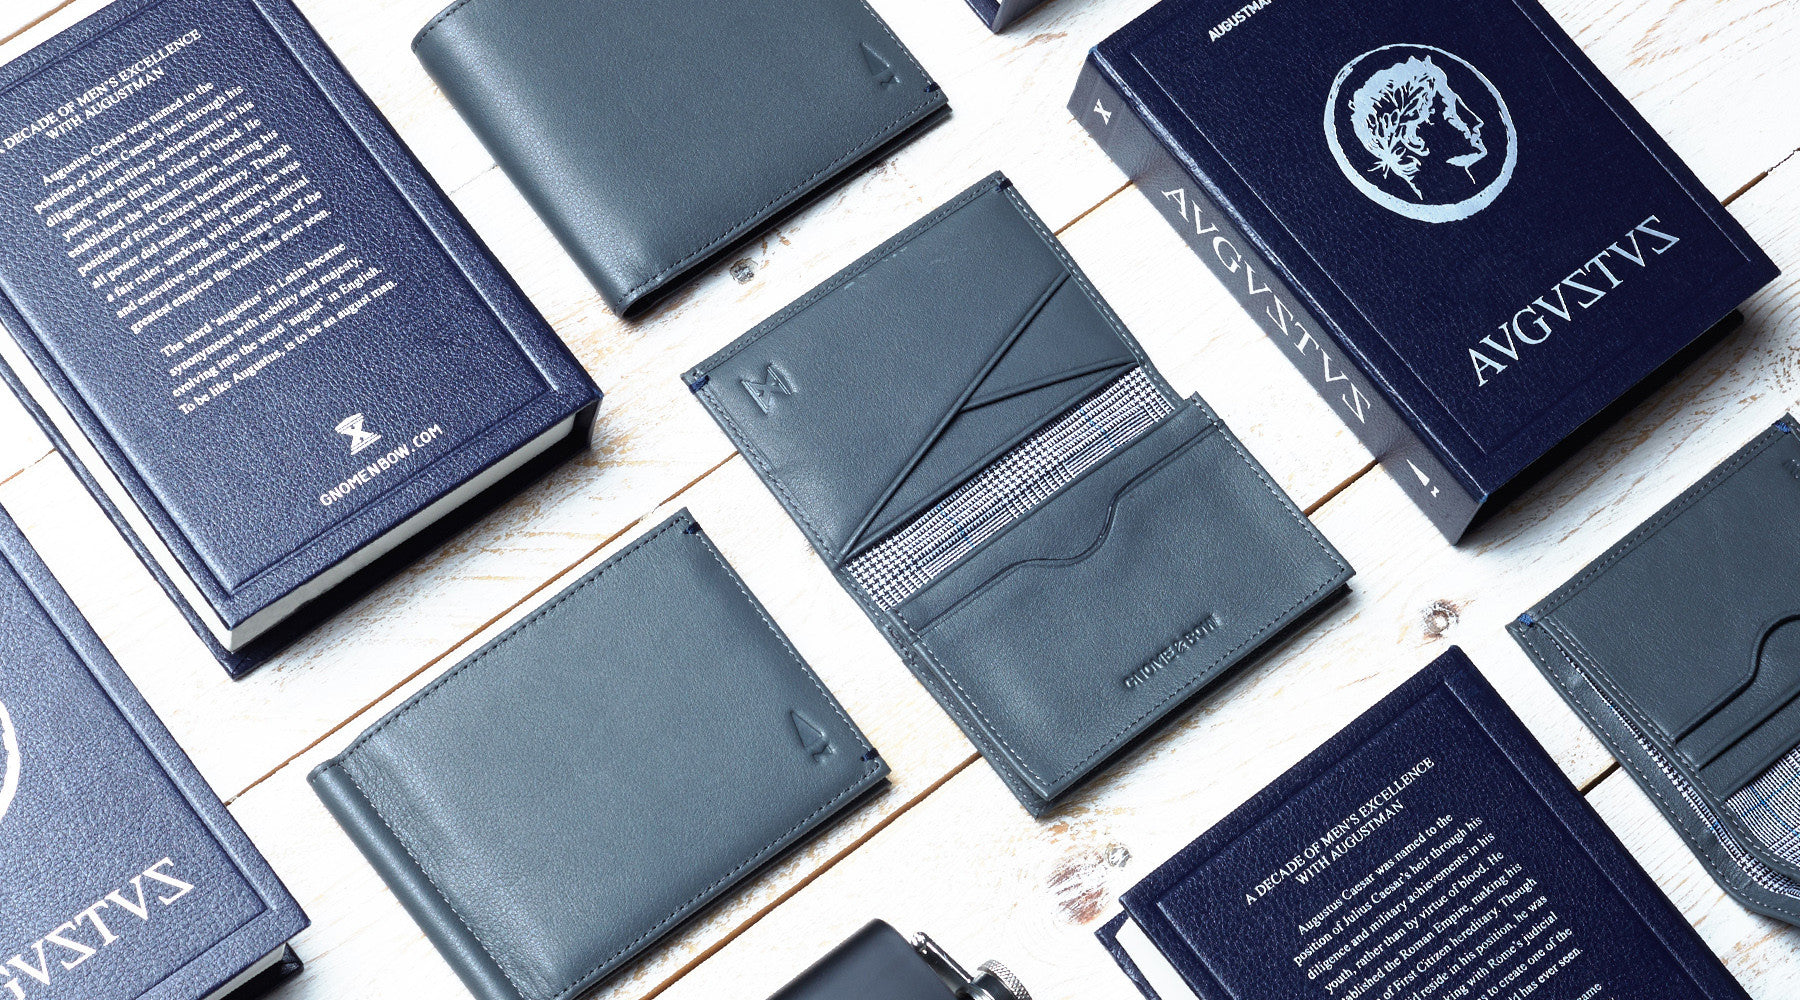 8th Aug | (AW16) August Man x Gnome & Bow present AUGUSTUS: A limited edition wallet collection